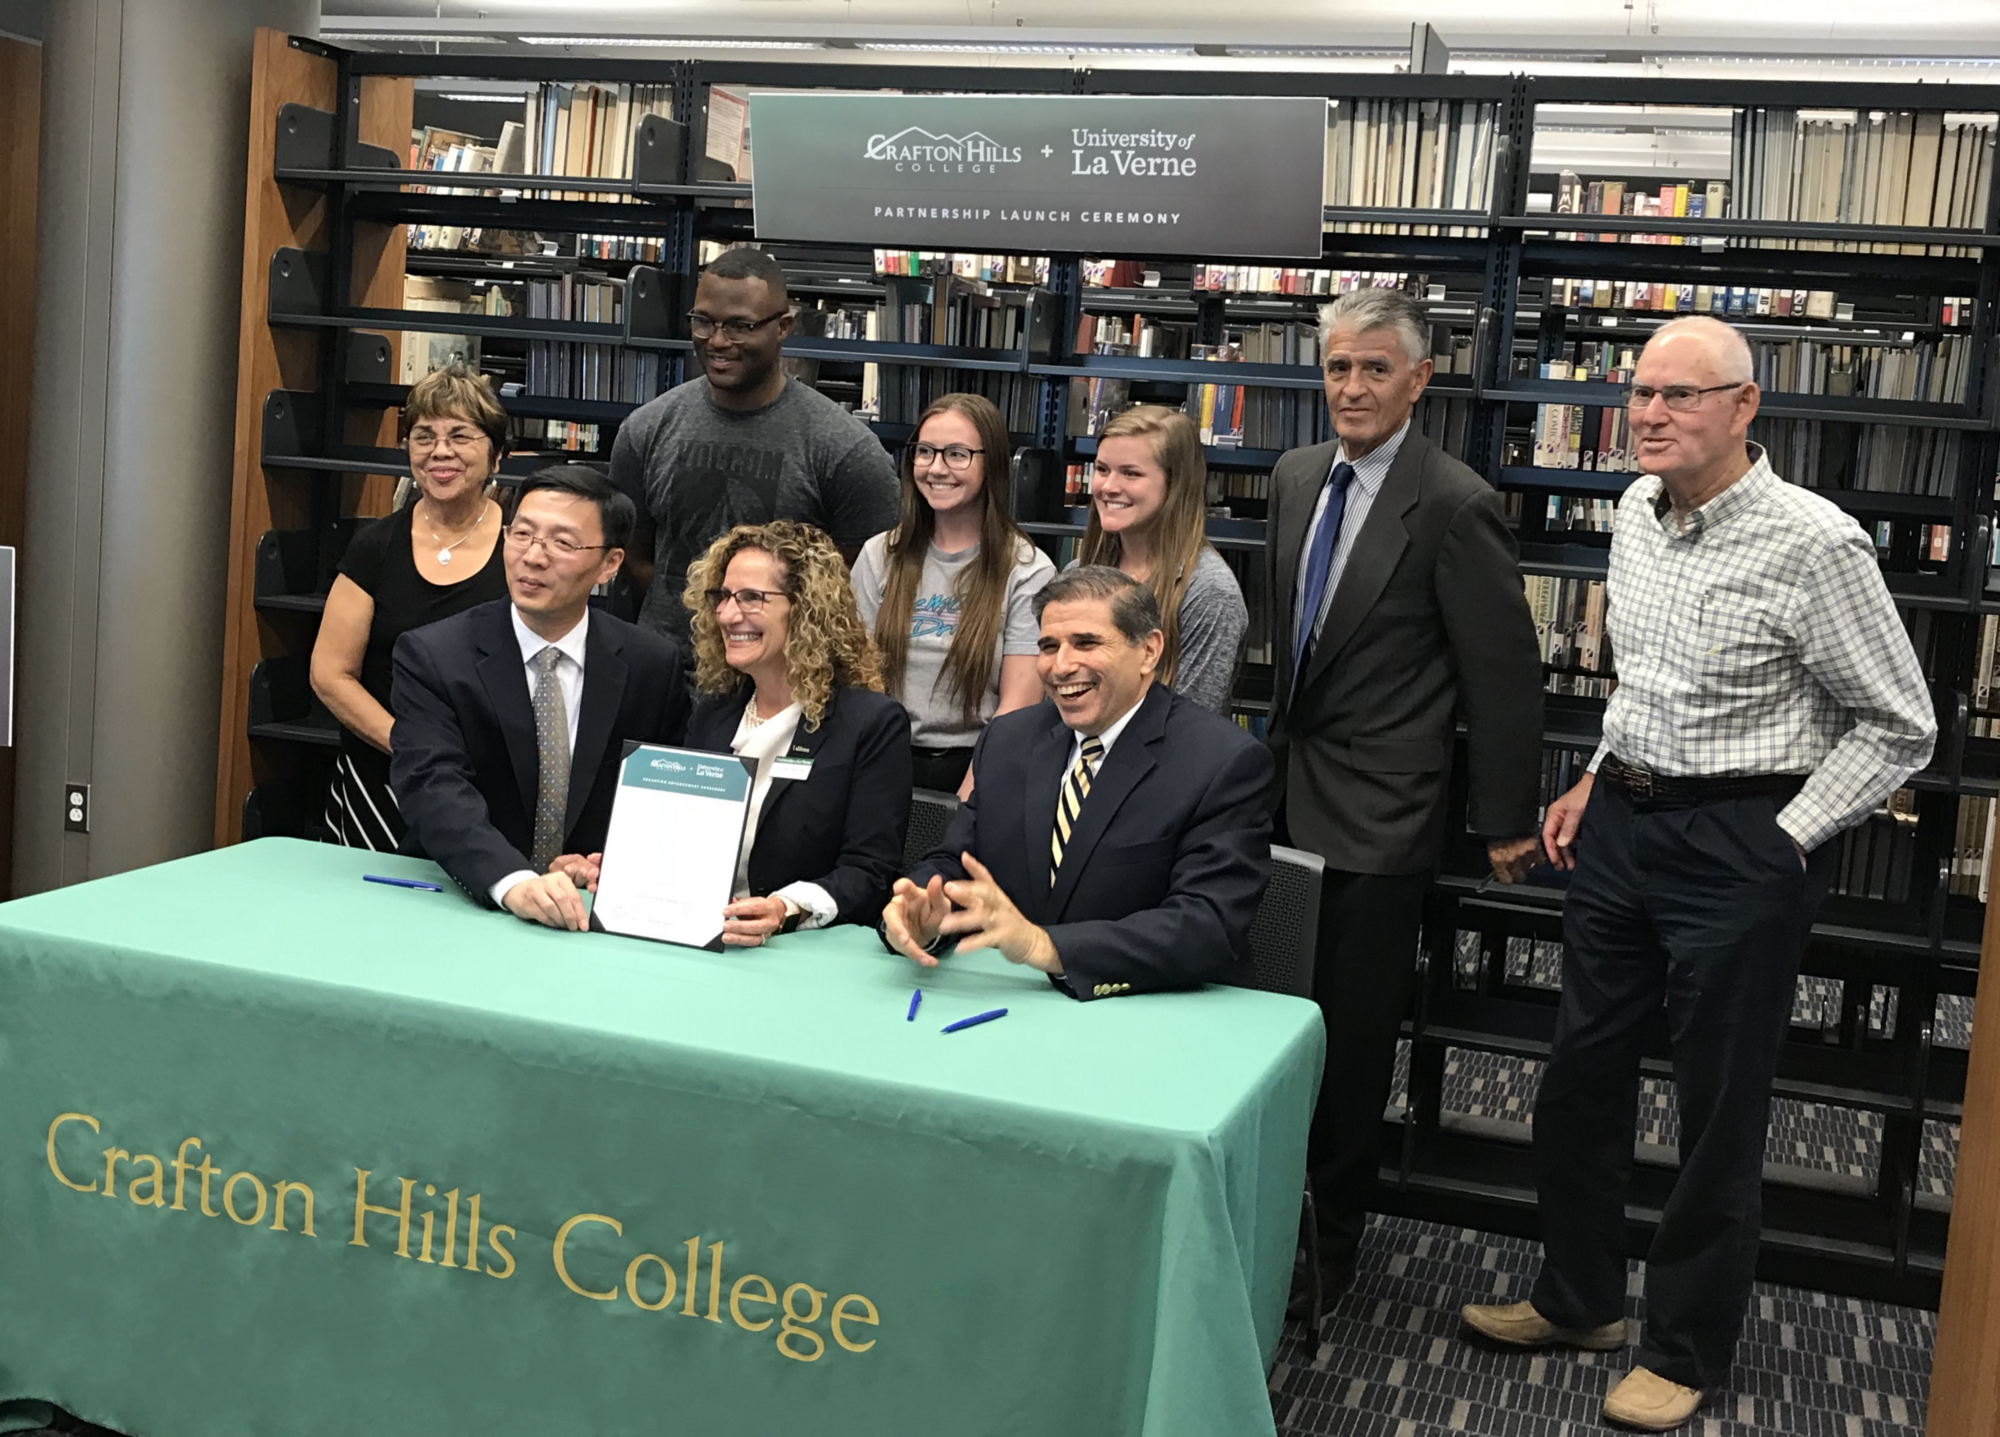 crafton hills college and university of la verne team up